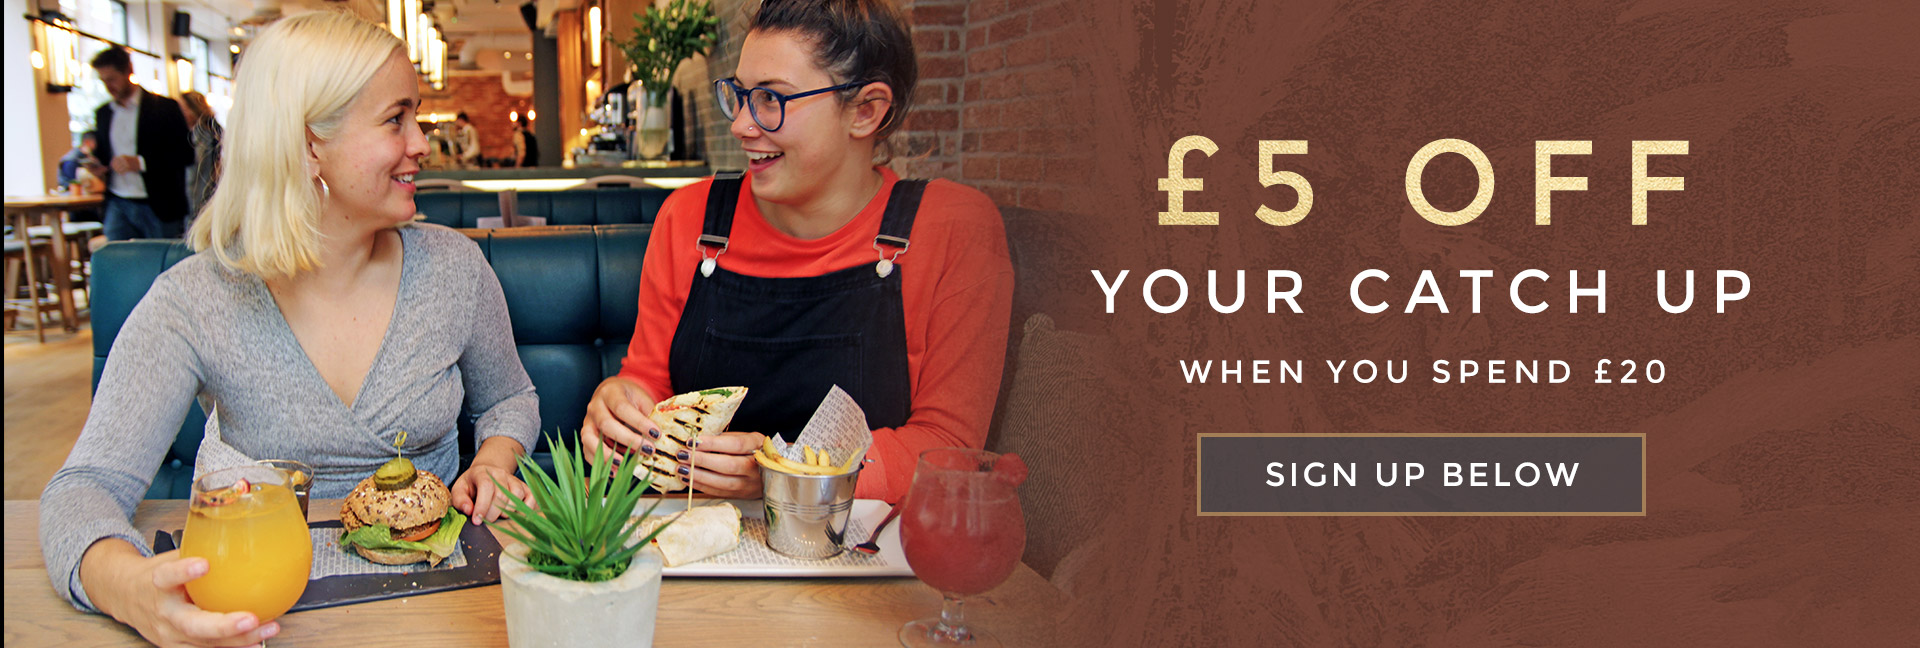 £5 off your next catch-up - When you spend £20 on food and drink